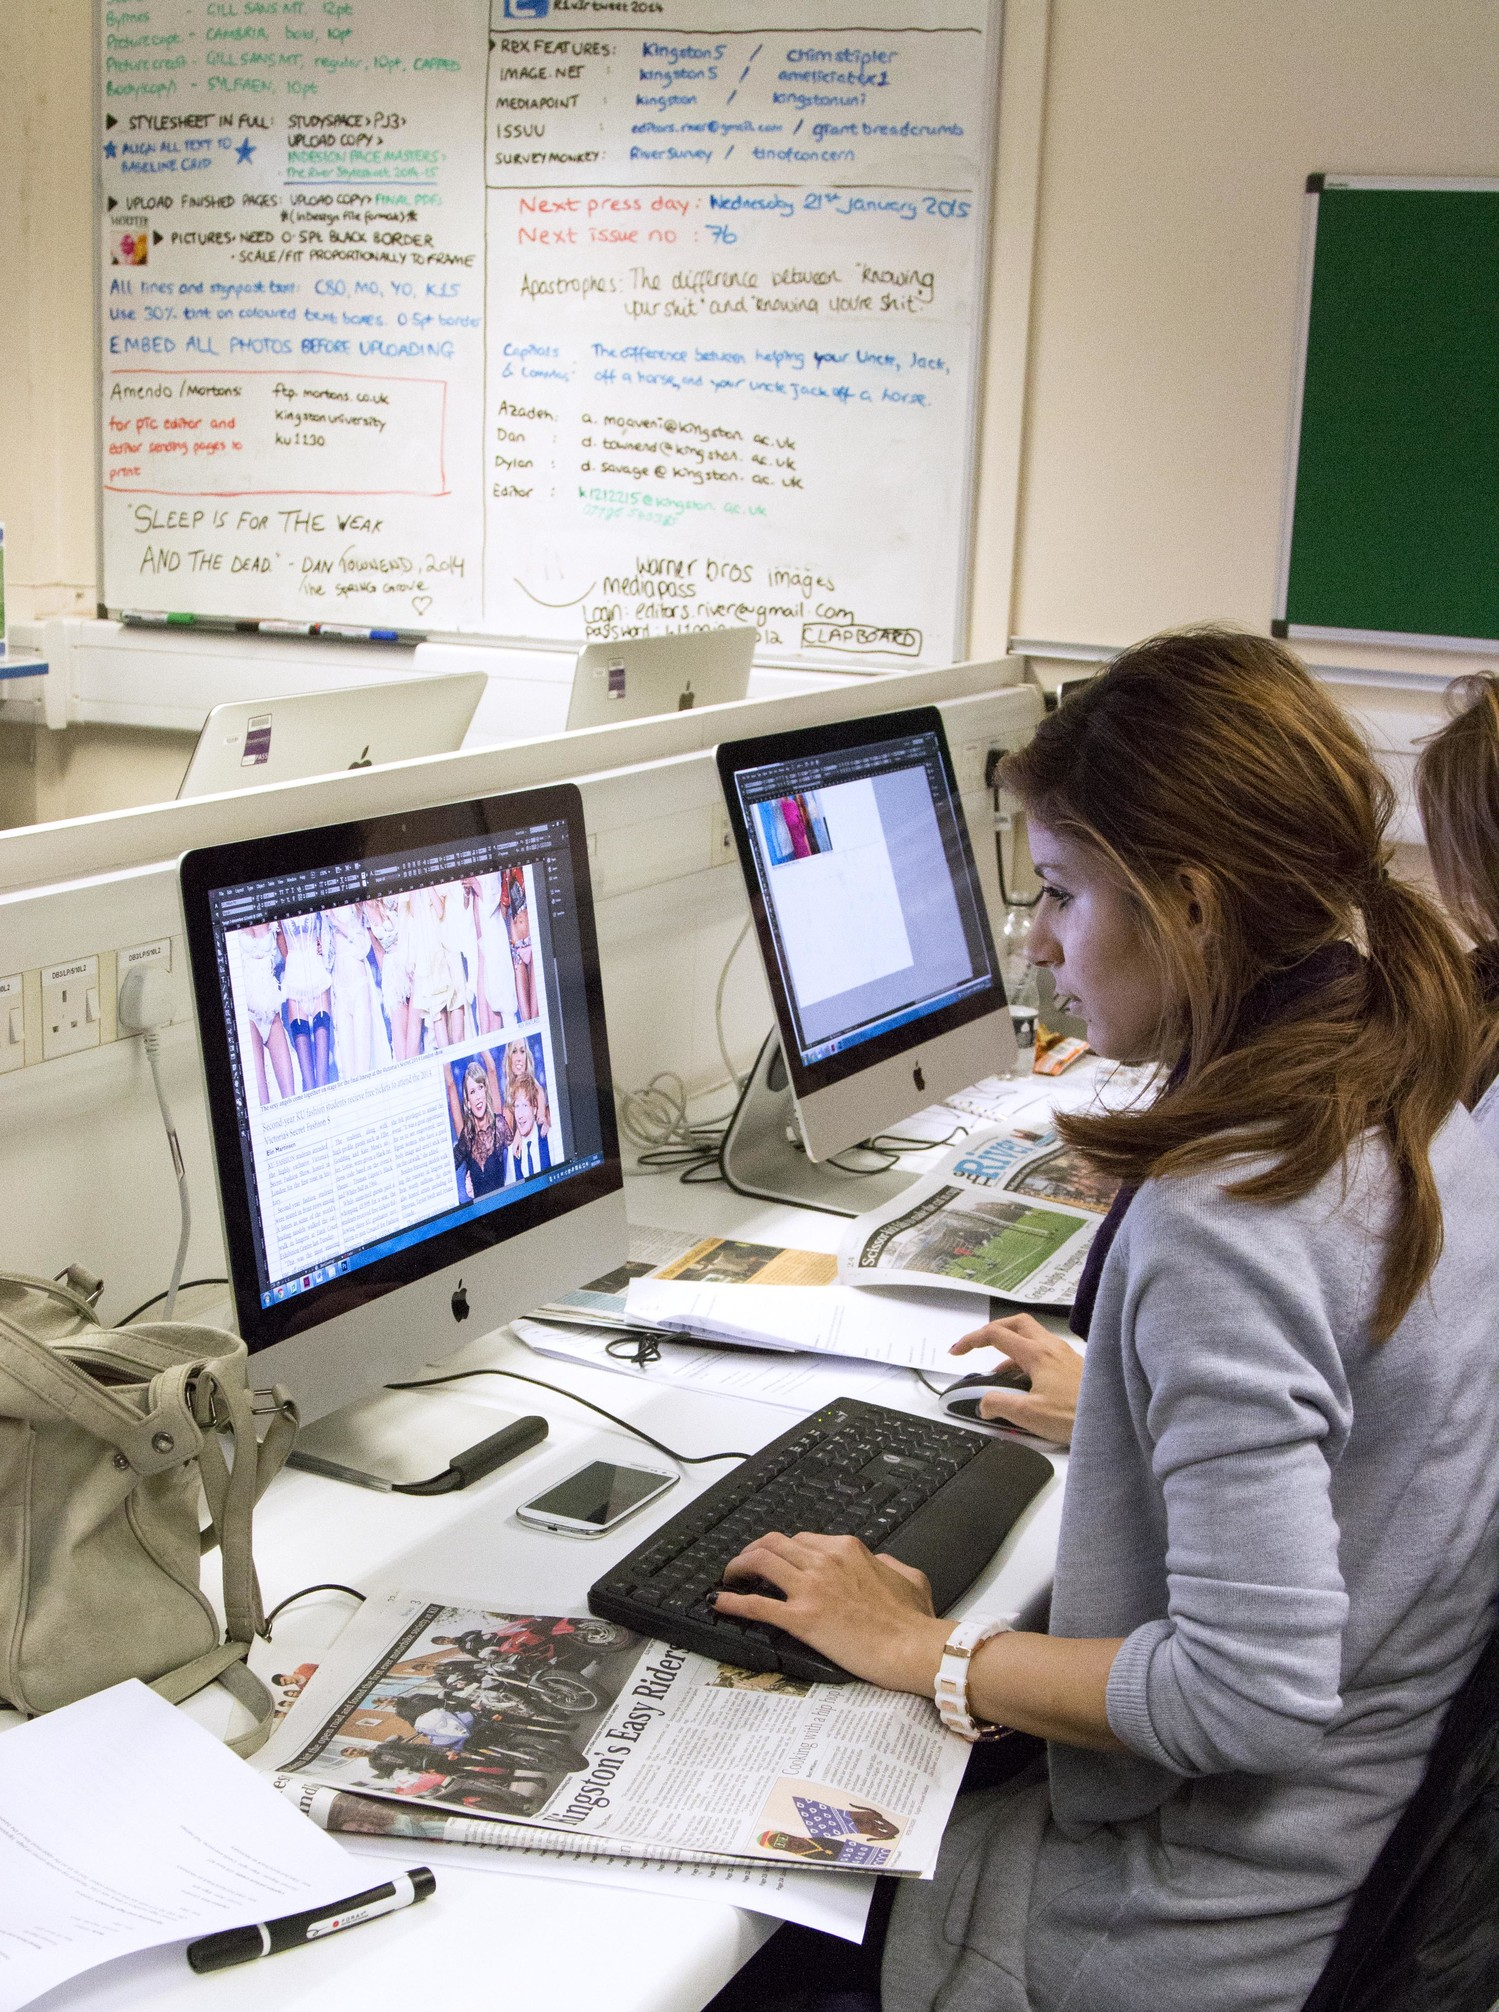 Work placements for fashion students